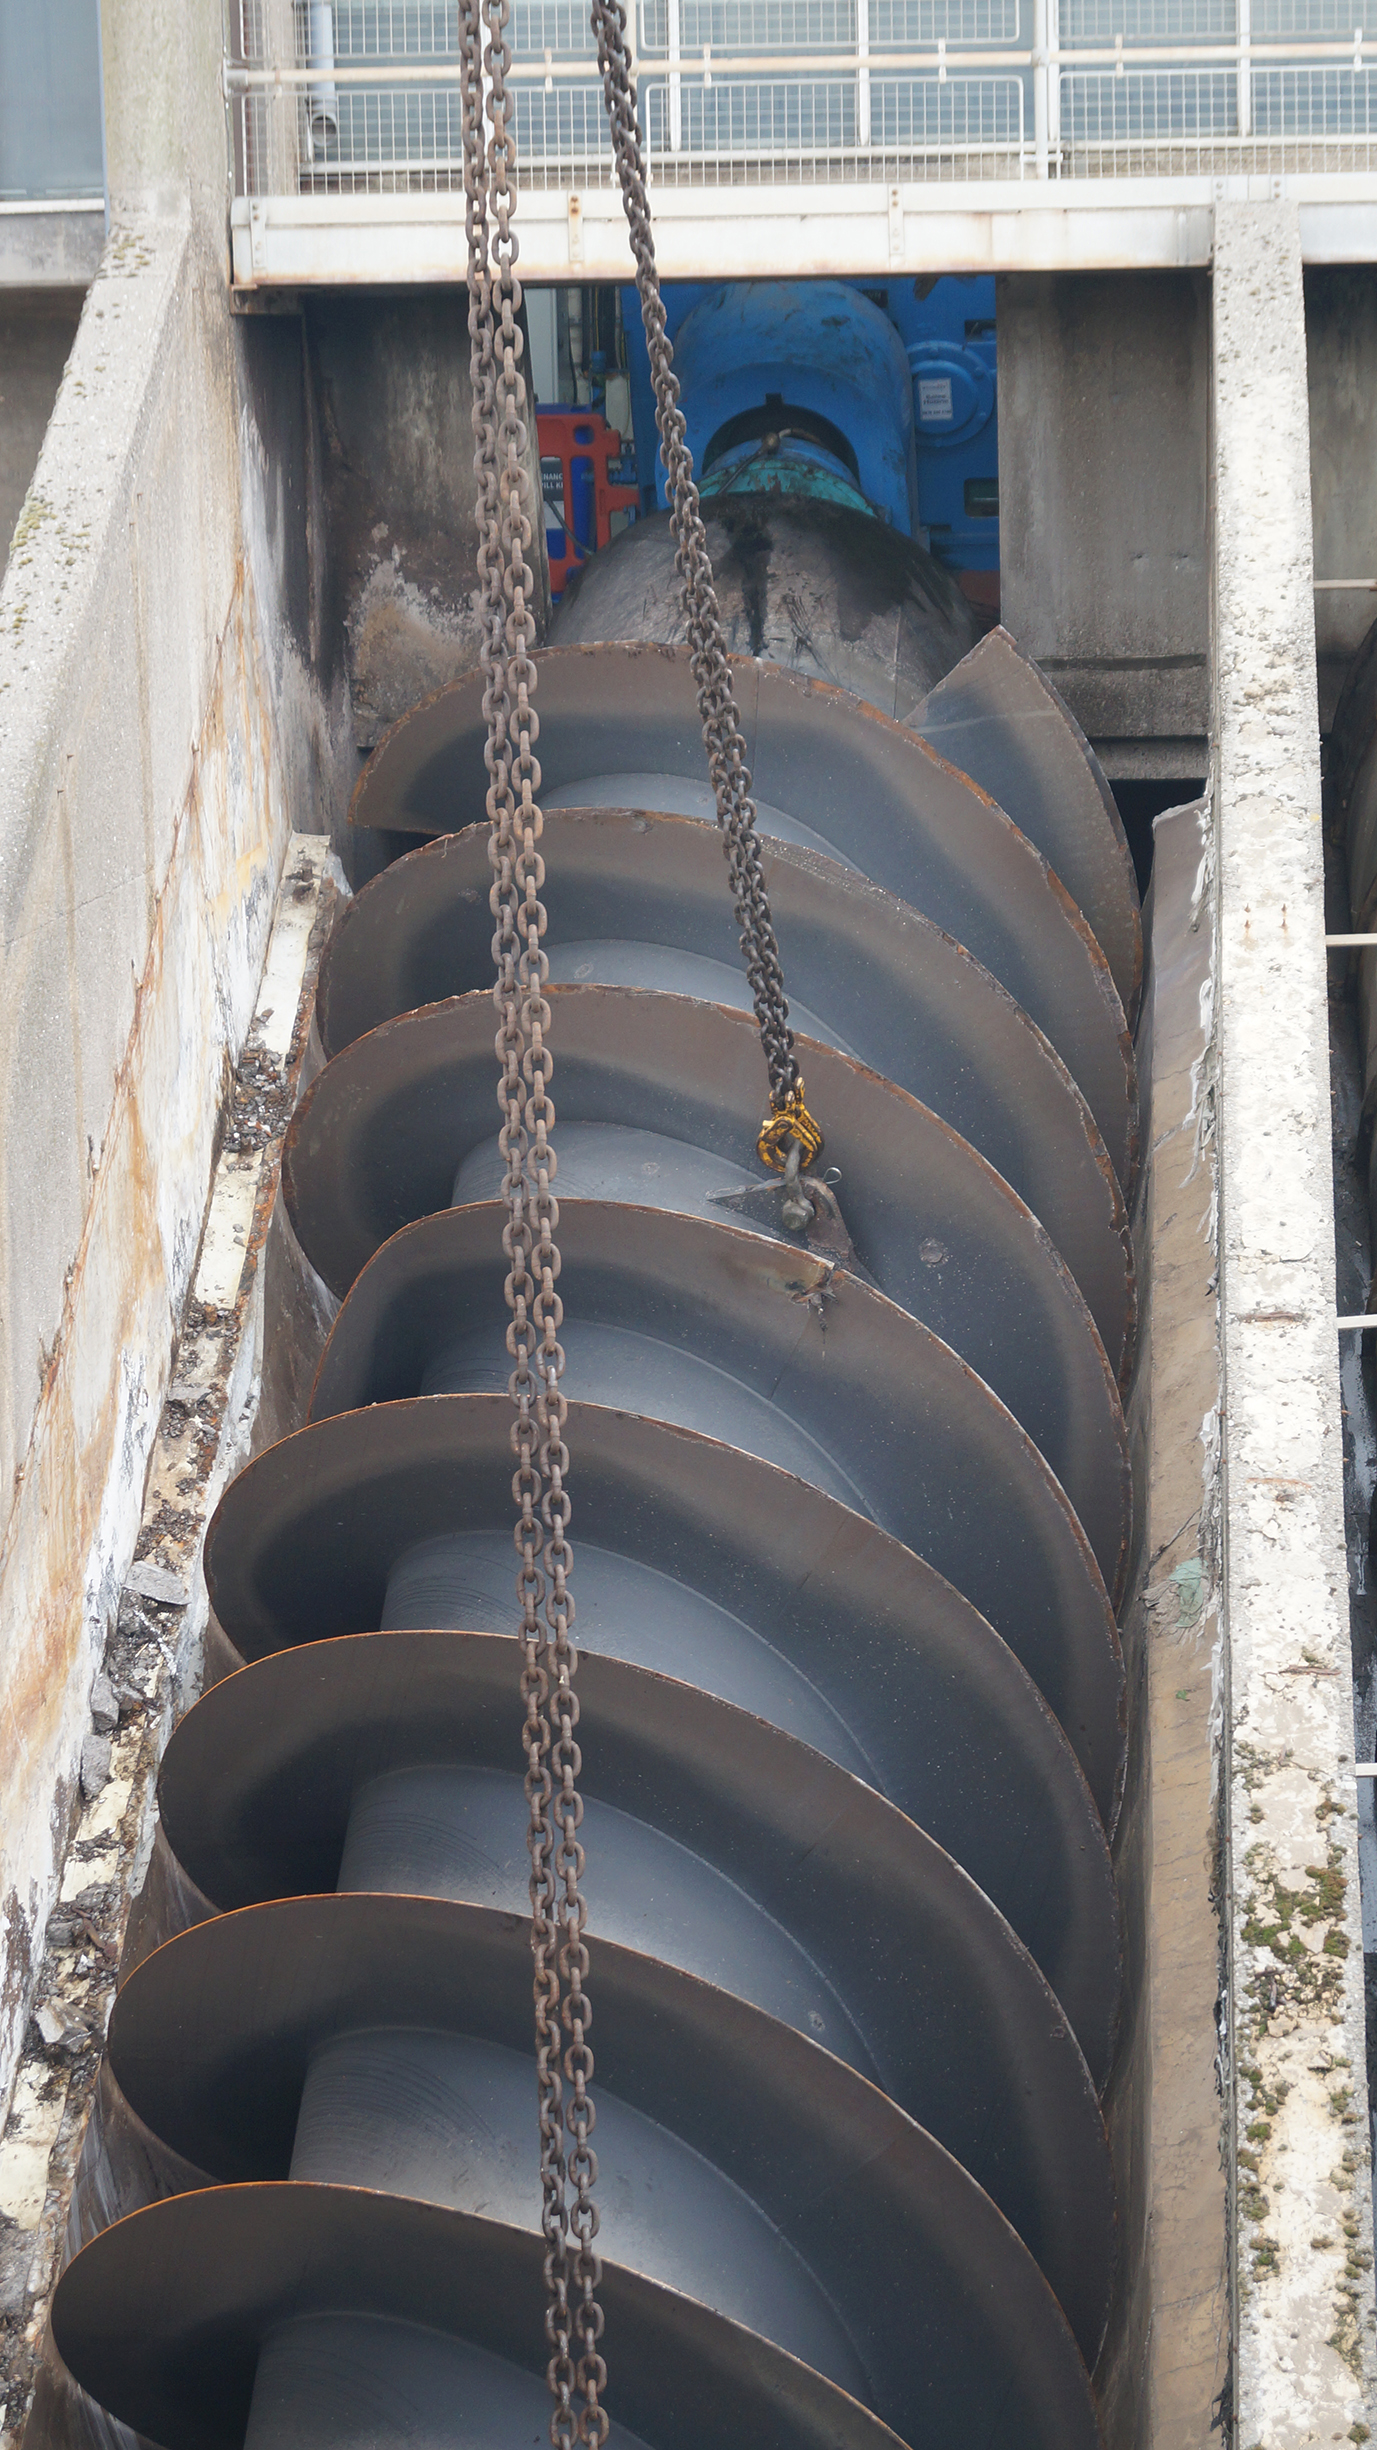 Giant screw pump to be replaced at major sewage treatment works